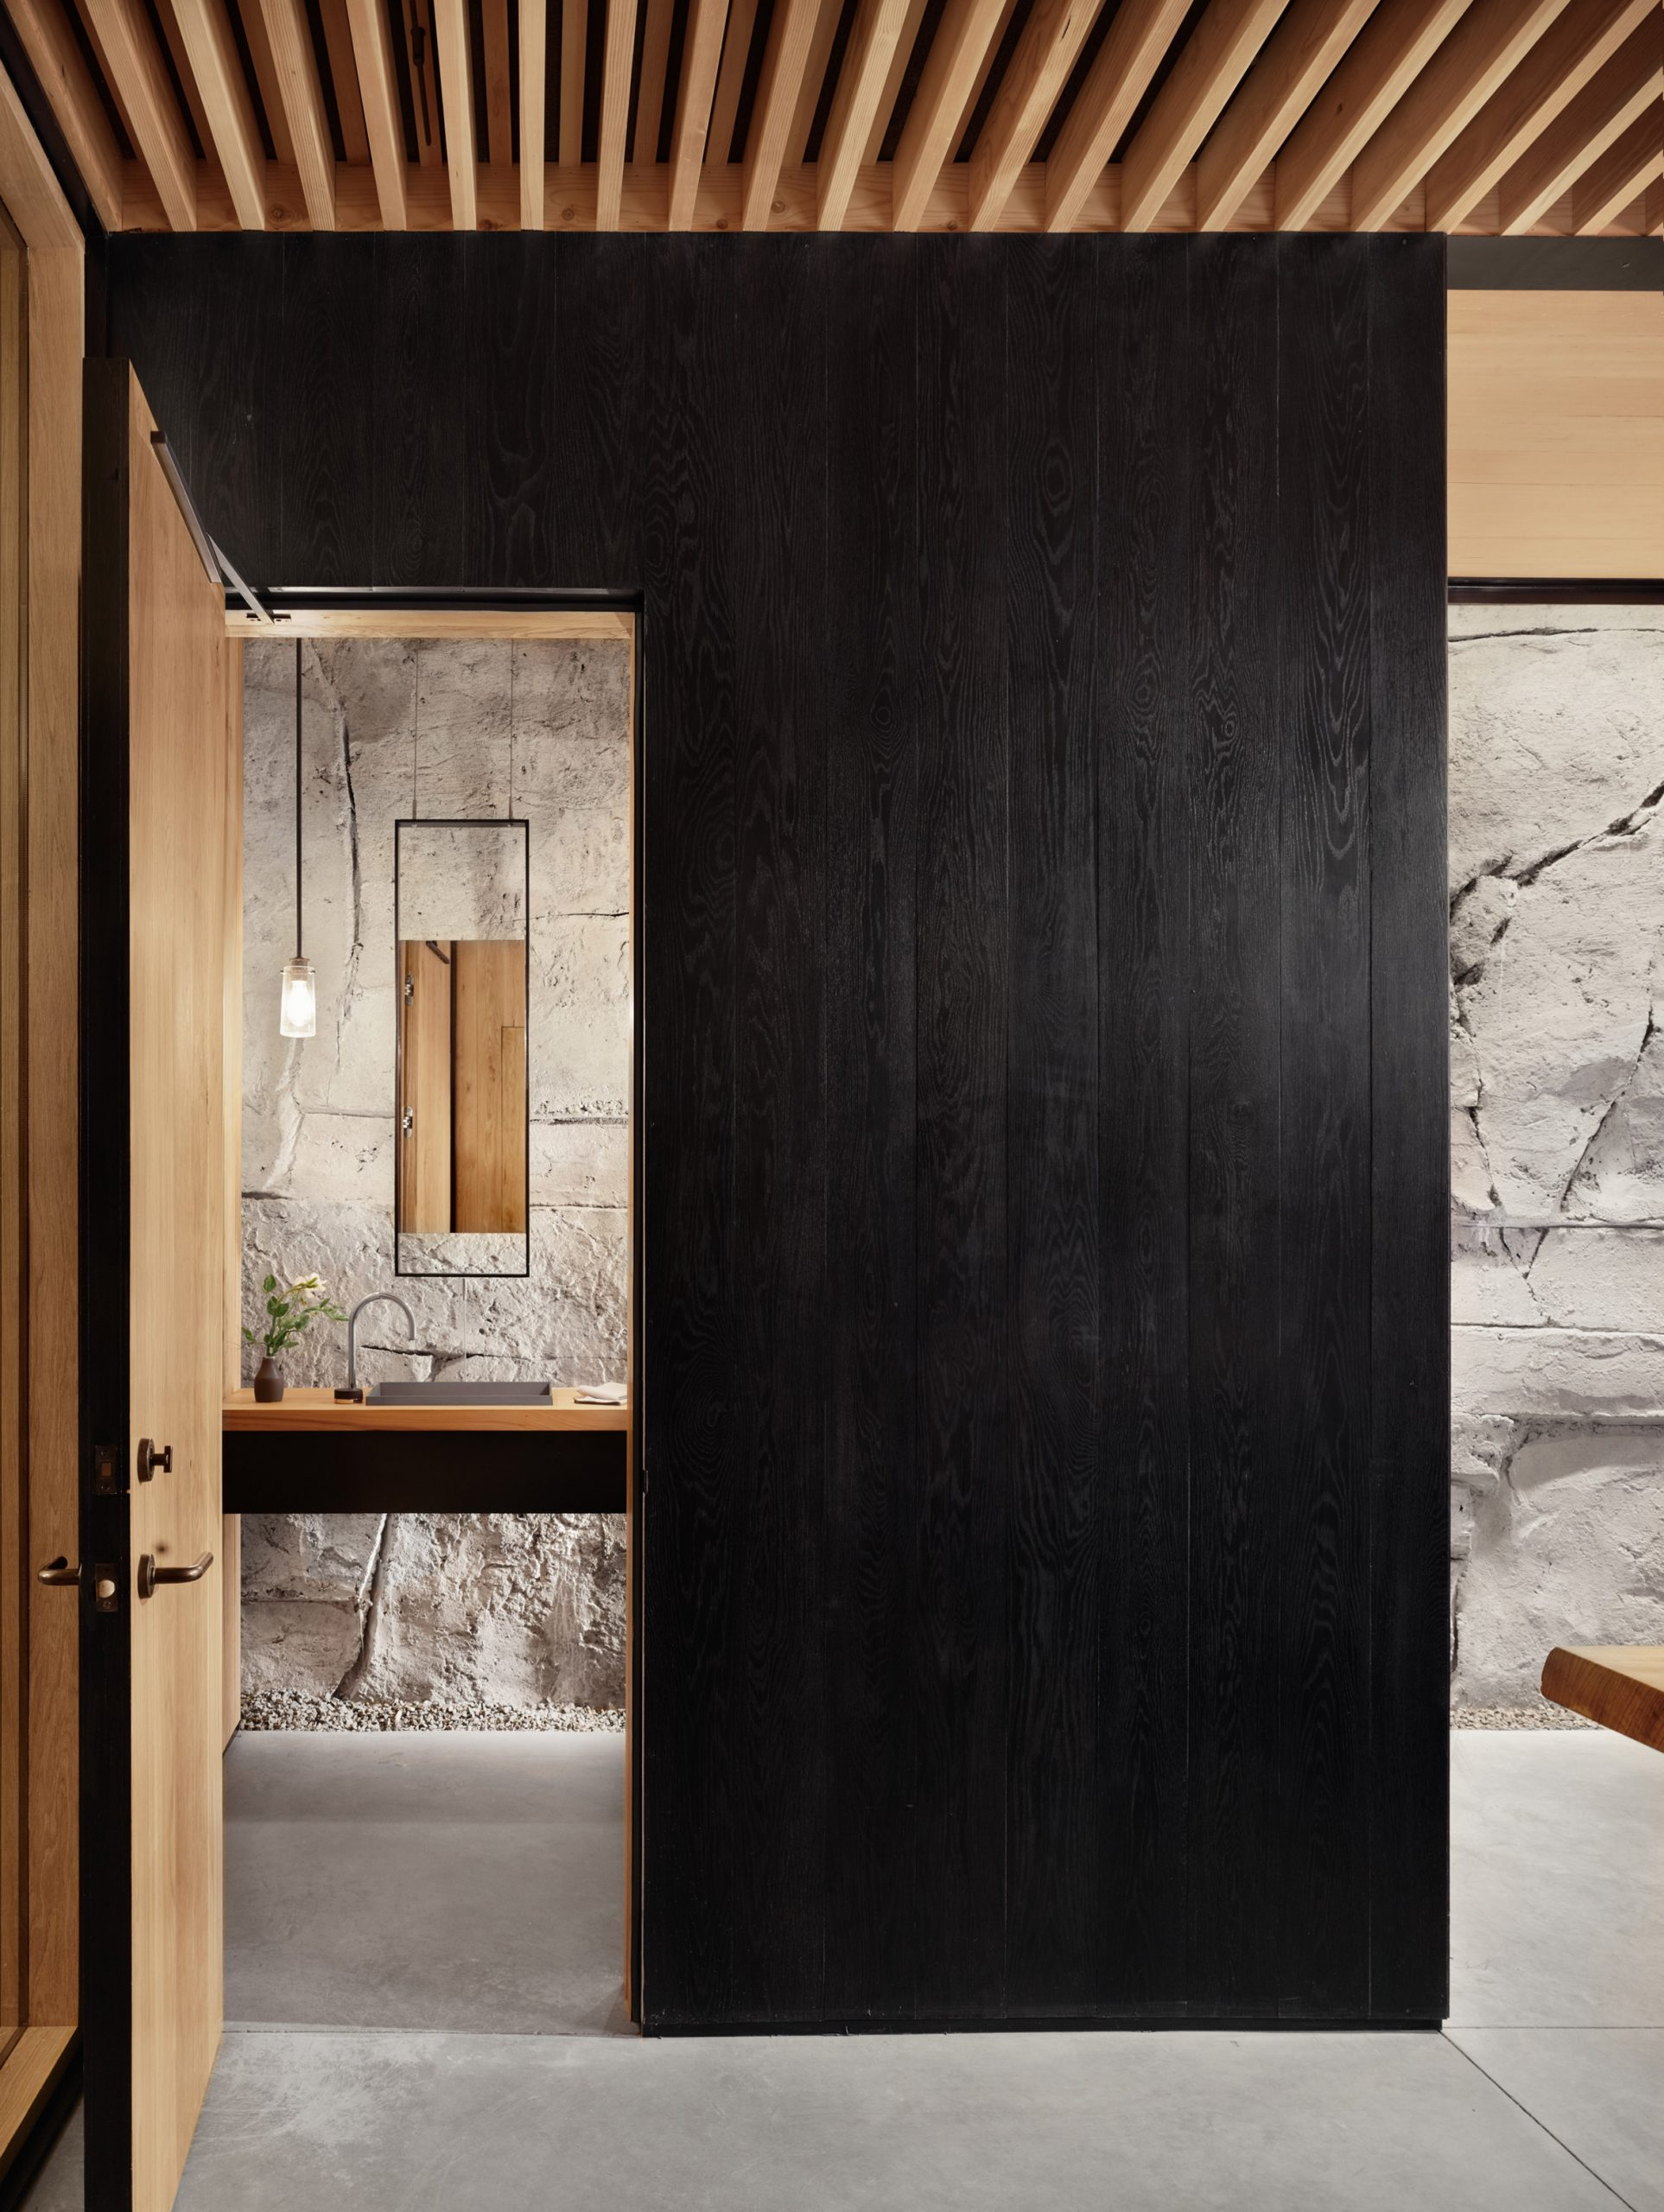 Ebonized wooden walls of Hill Country Wine Cave